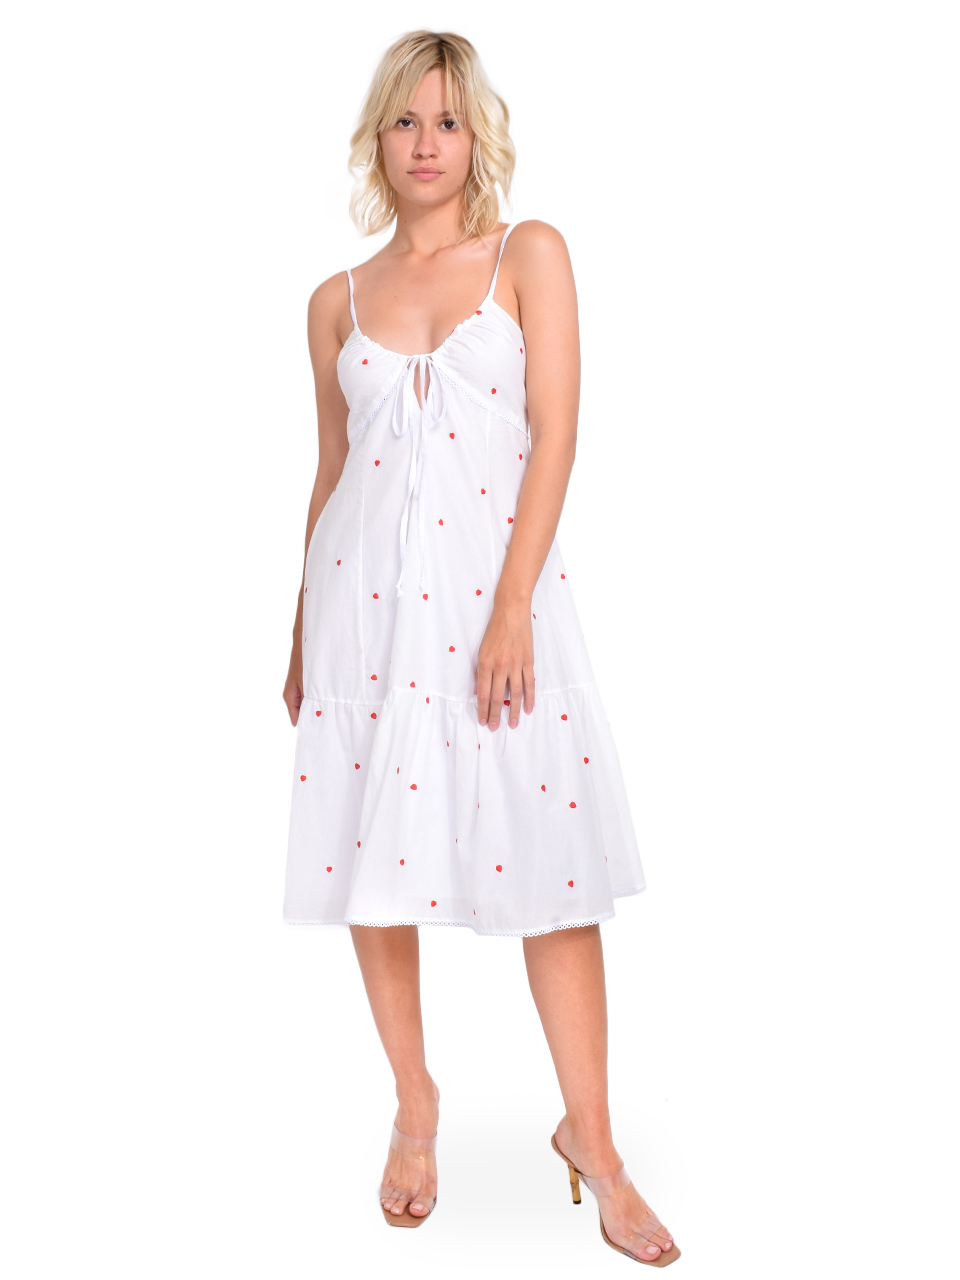 Ottod'Ame Embroidered Dress with Drawstring Front View  X1https://cdn11.bigcommerce.com/s-3wu6n/products/33257/images/109935/86__85122.1594259072.244.365.jpg?c=2X2